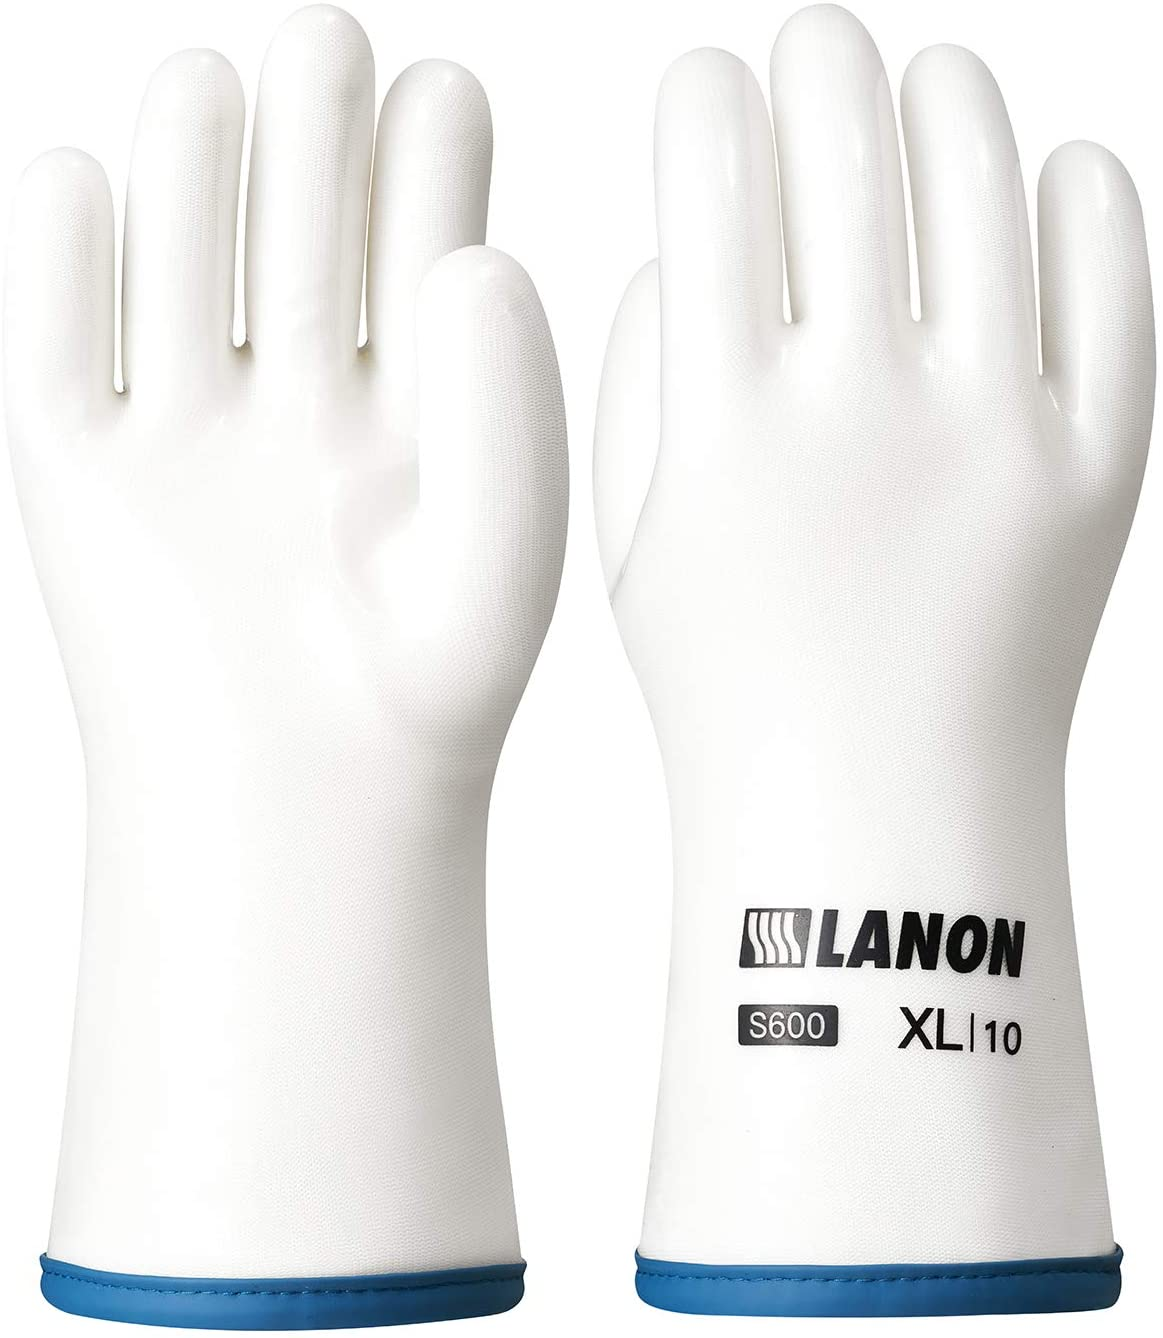 LANON Liquid Silicone Heat Resistant Gloves, Food Contact Grade, Waterproof, White, Size 10